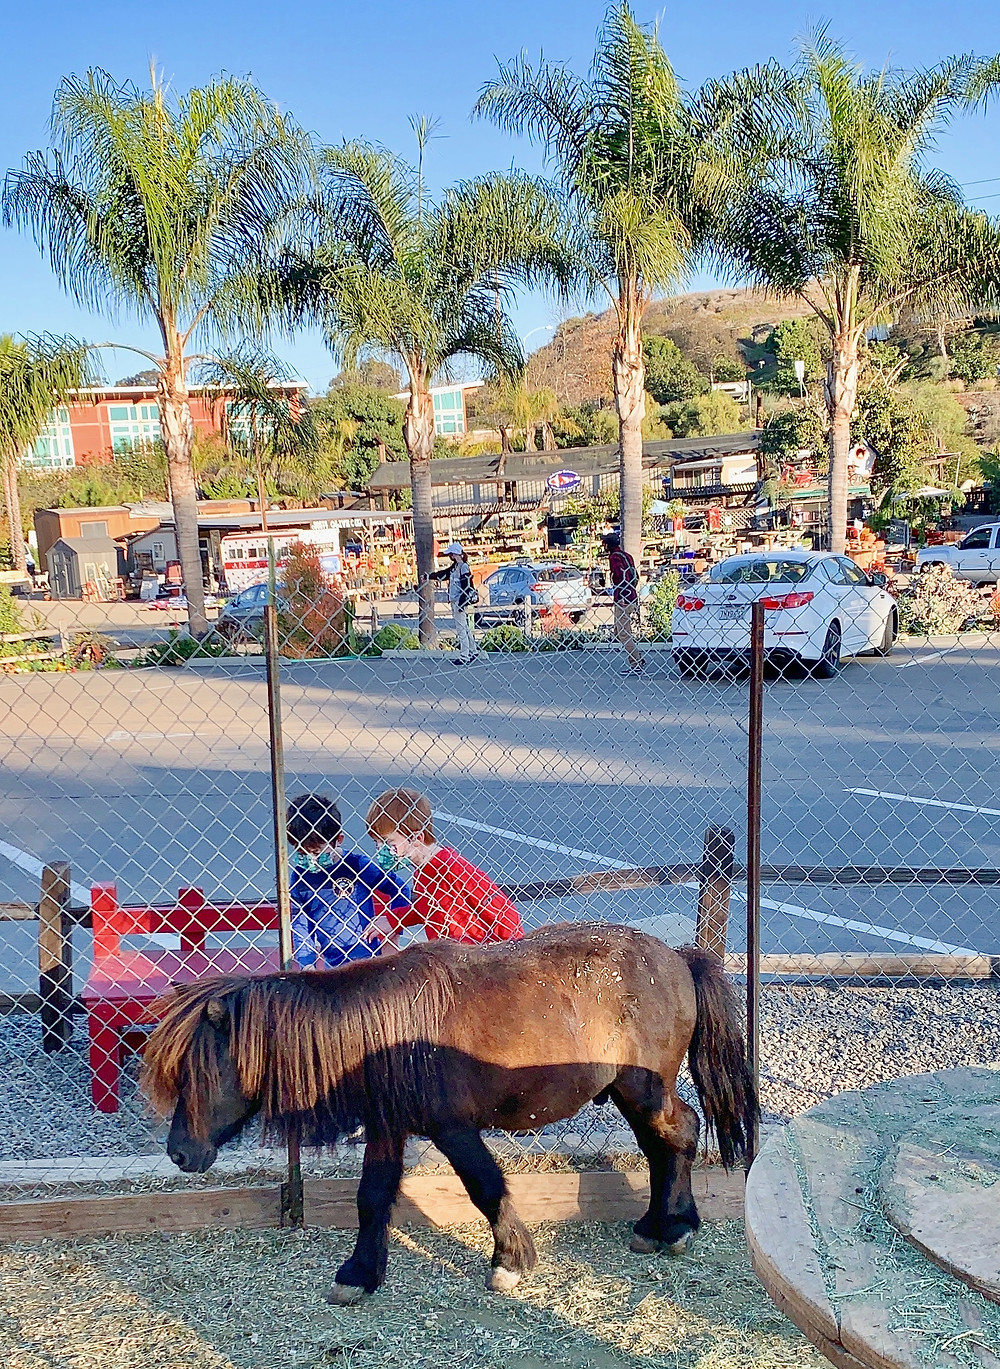 Sunshine Gardens Encinitas Farm Animals Horse Goats Pigs Chickens Koi Fish Plants Succulents San Diego Kids Free Secret Zoos Wild Animals Hidden Gem